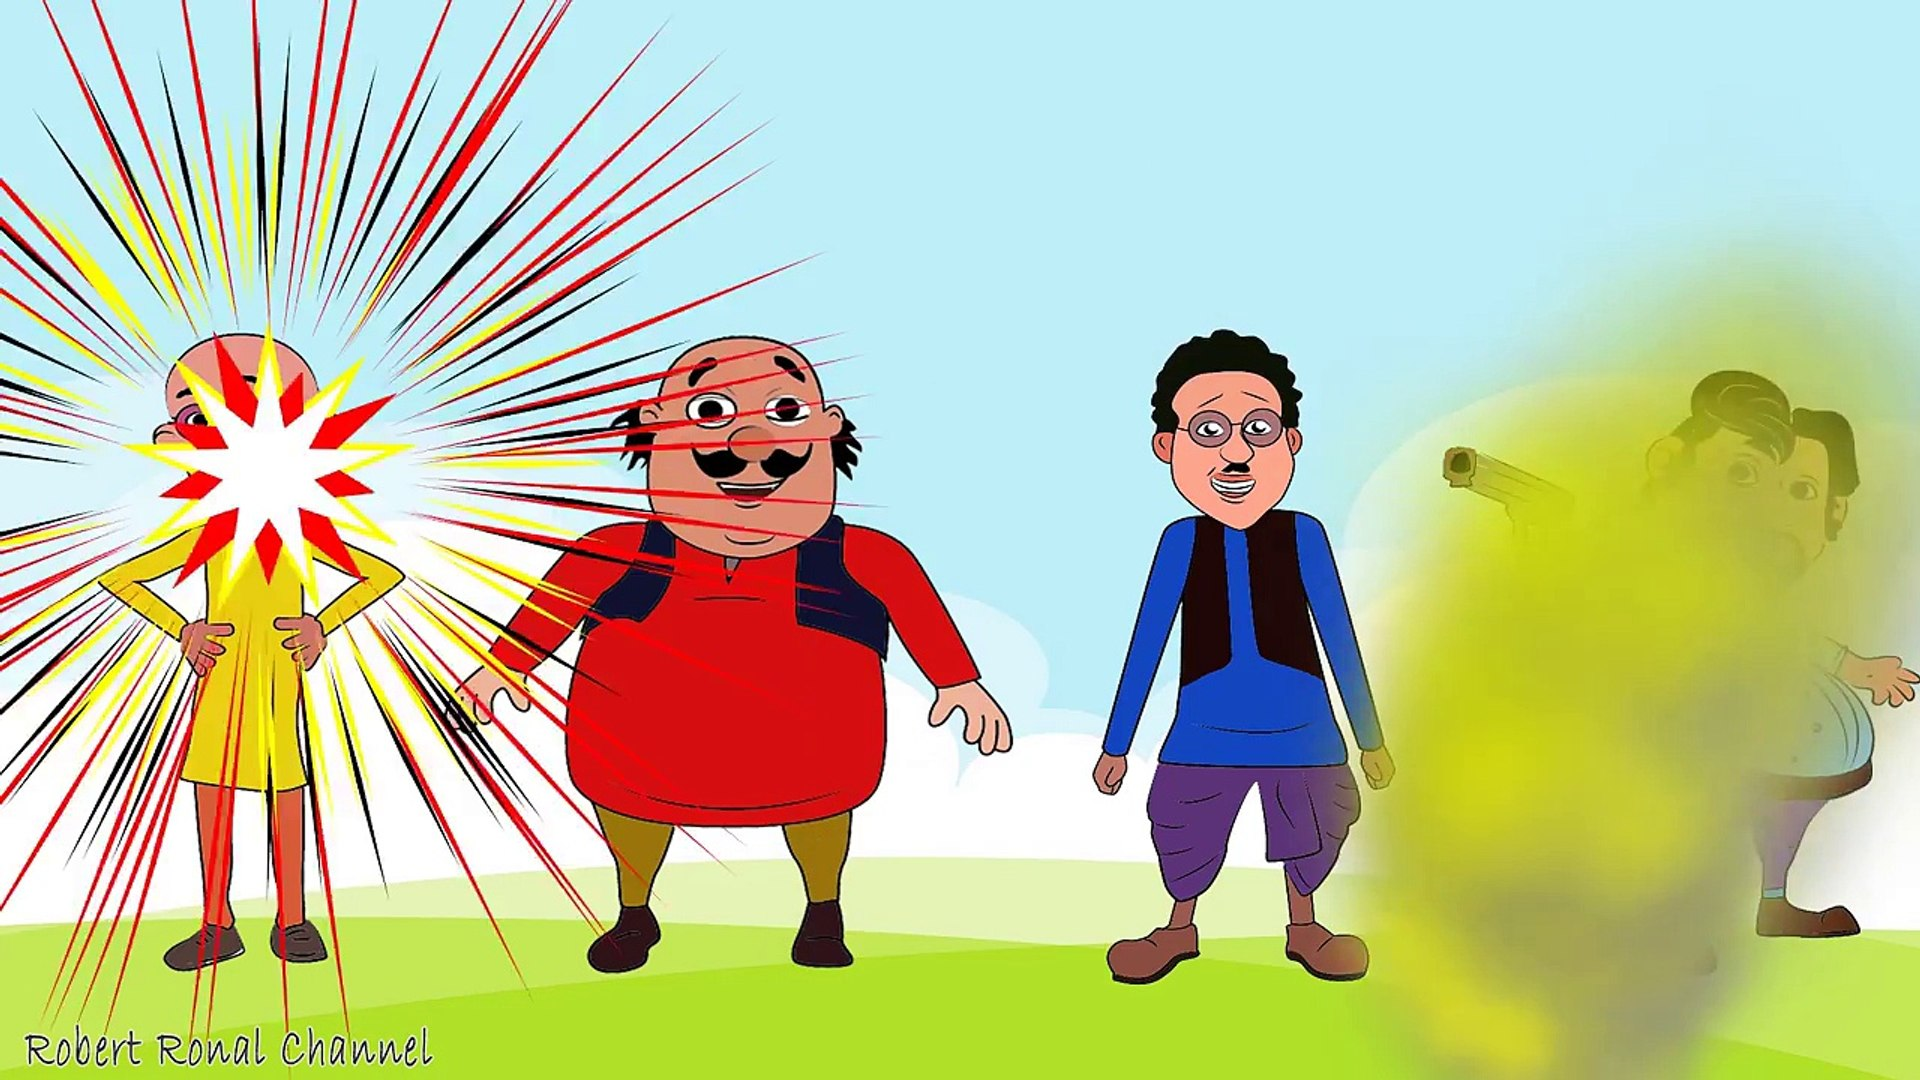 Learn Colors Wrong Hairs Motu Patlu trolls Chingam vs Ghasitaram